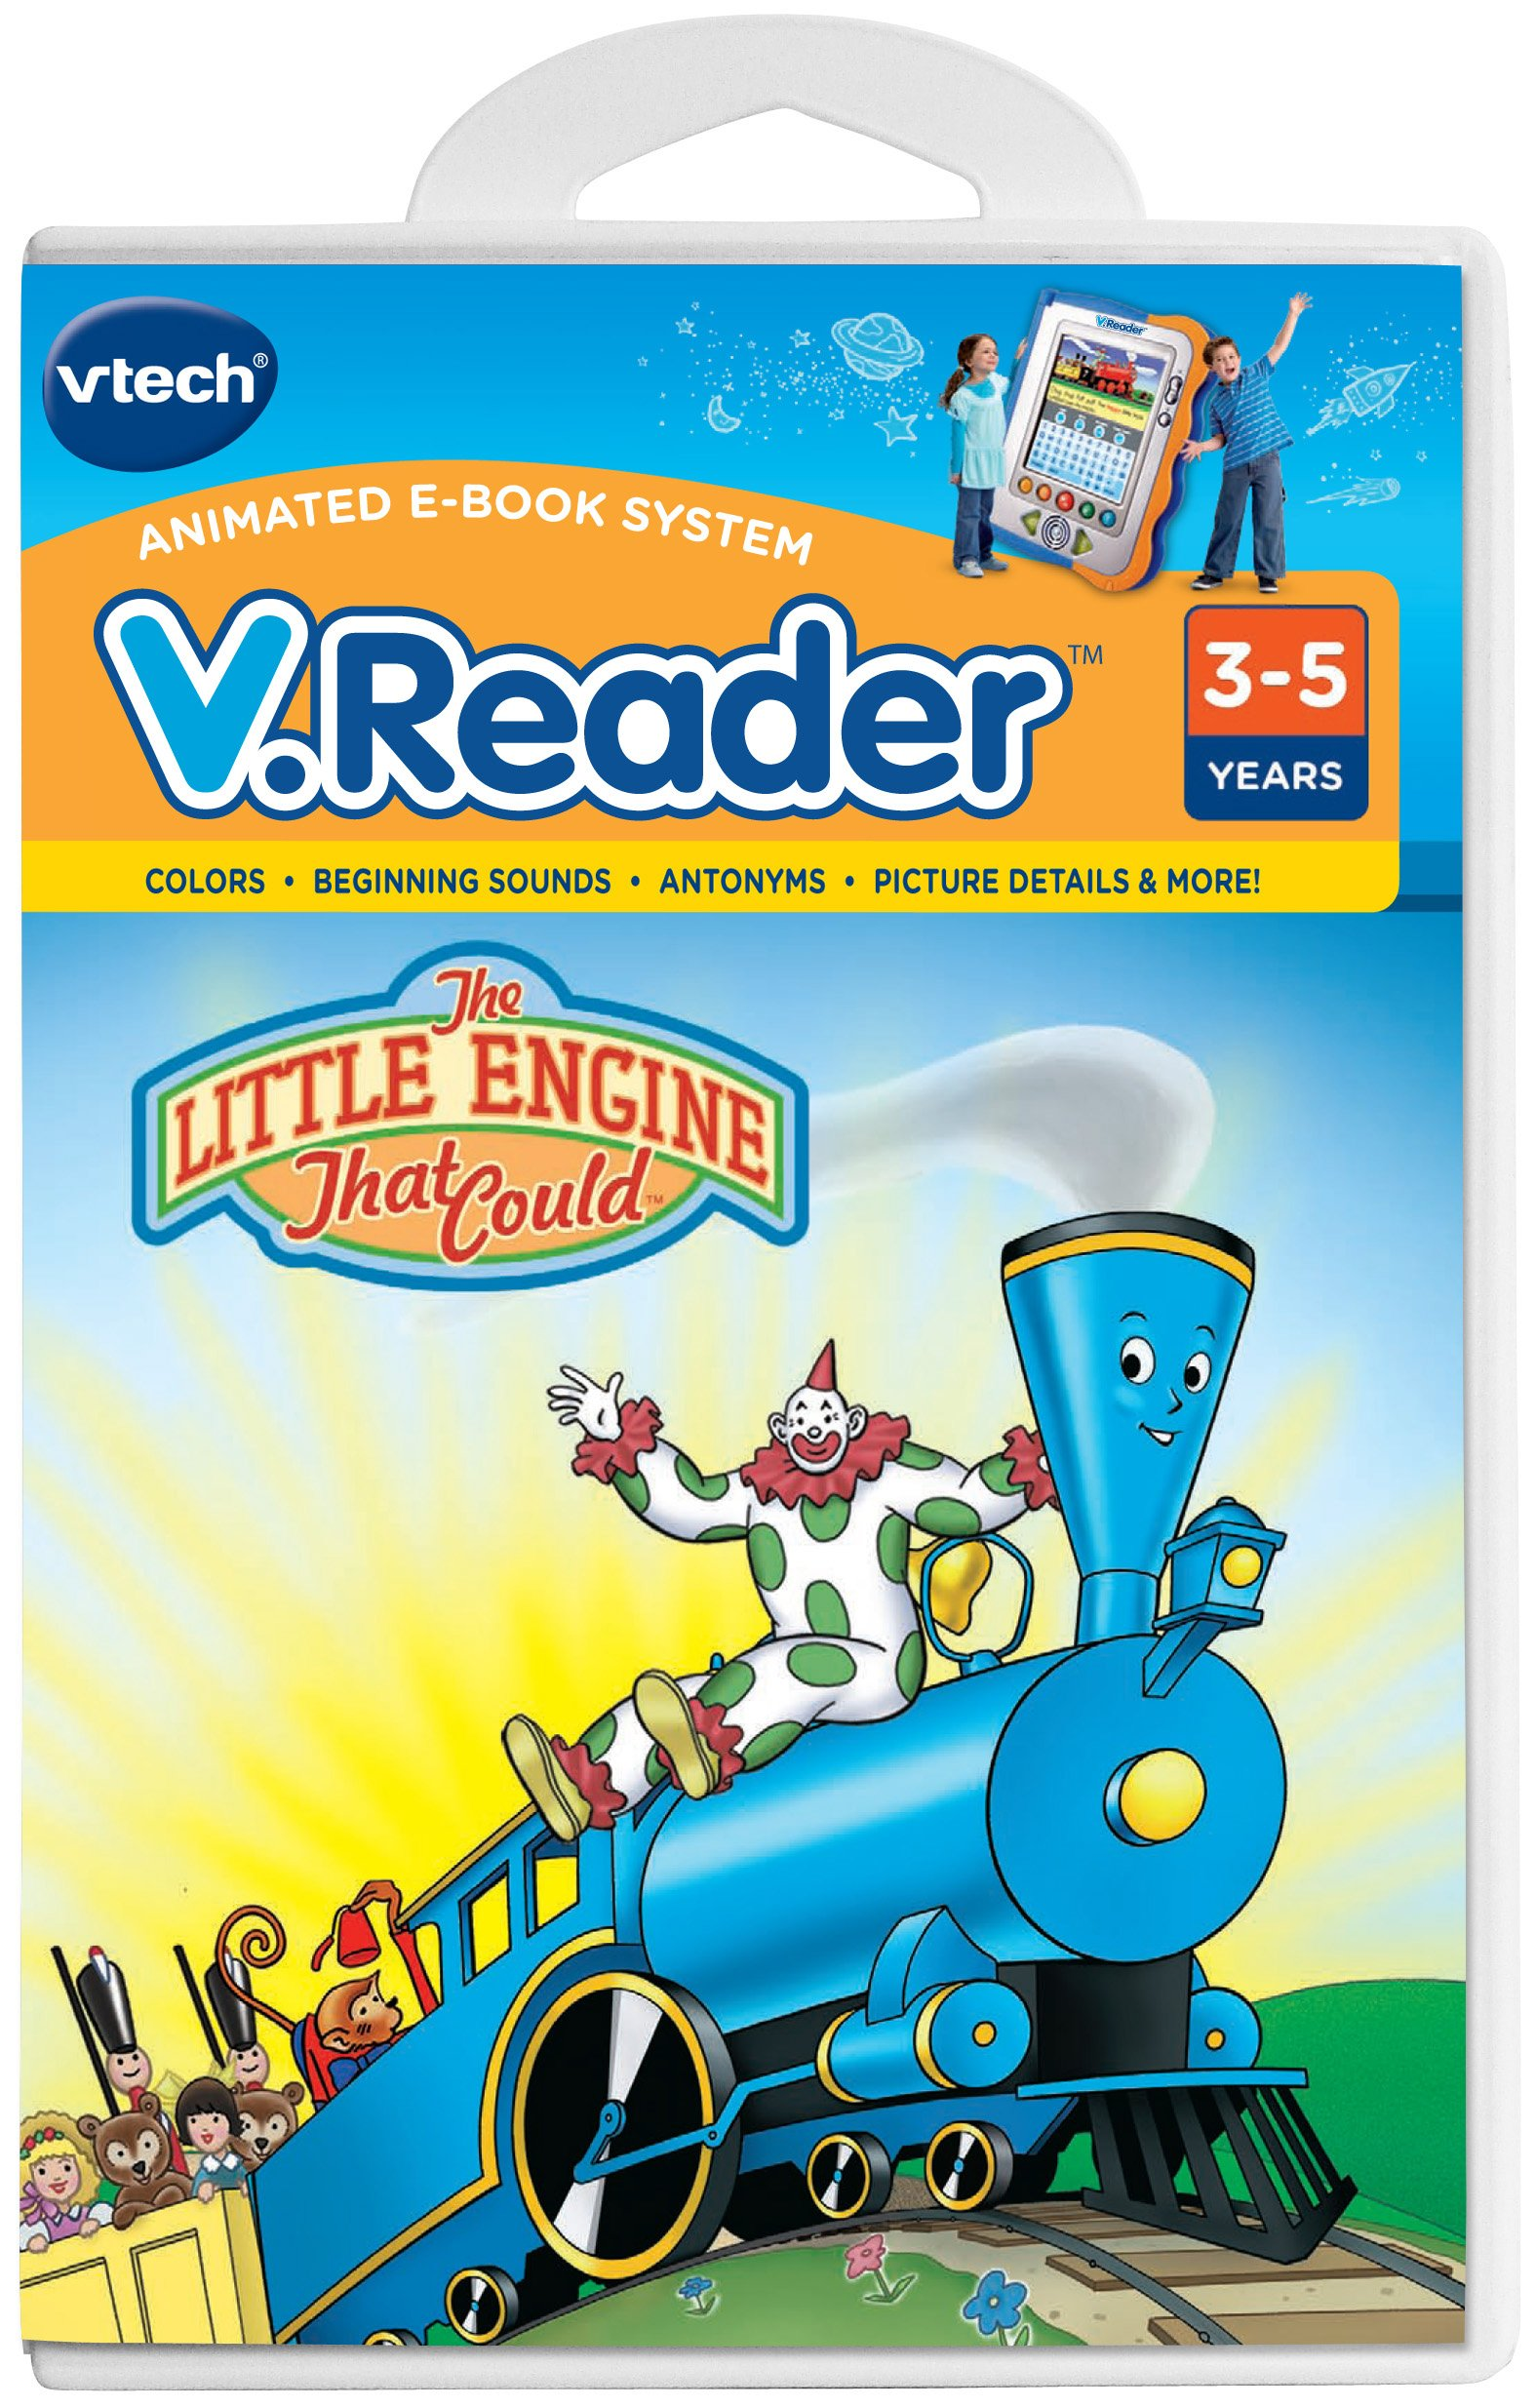 V.Reader Animated E-Book Cartridge - The Little Engine That Could by VTech (Image #1)